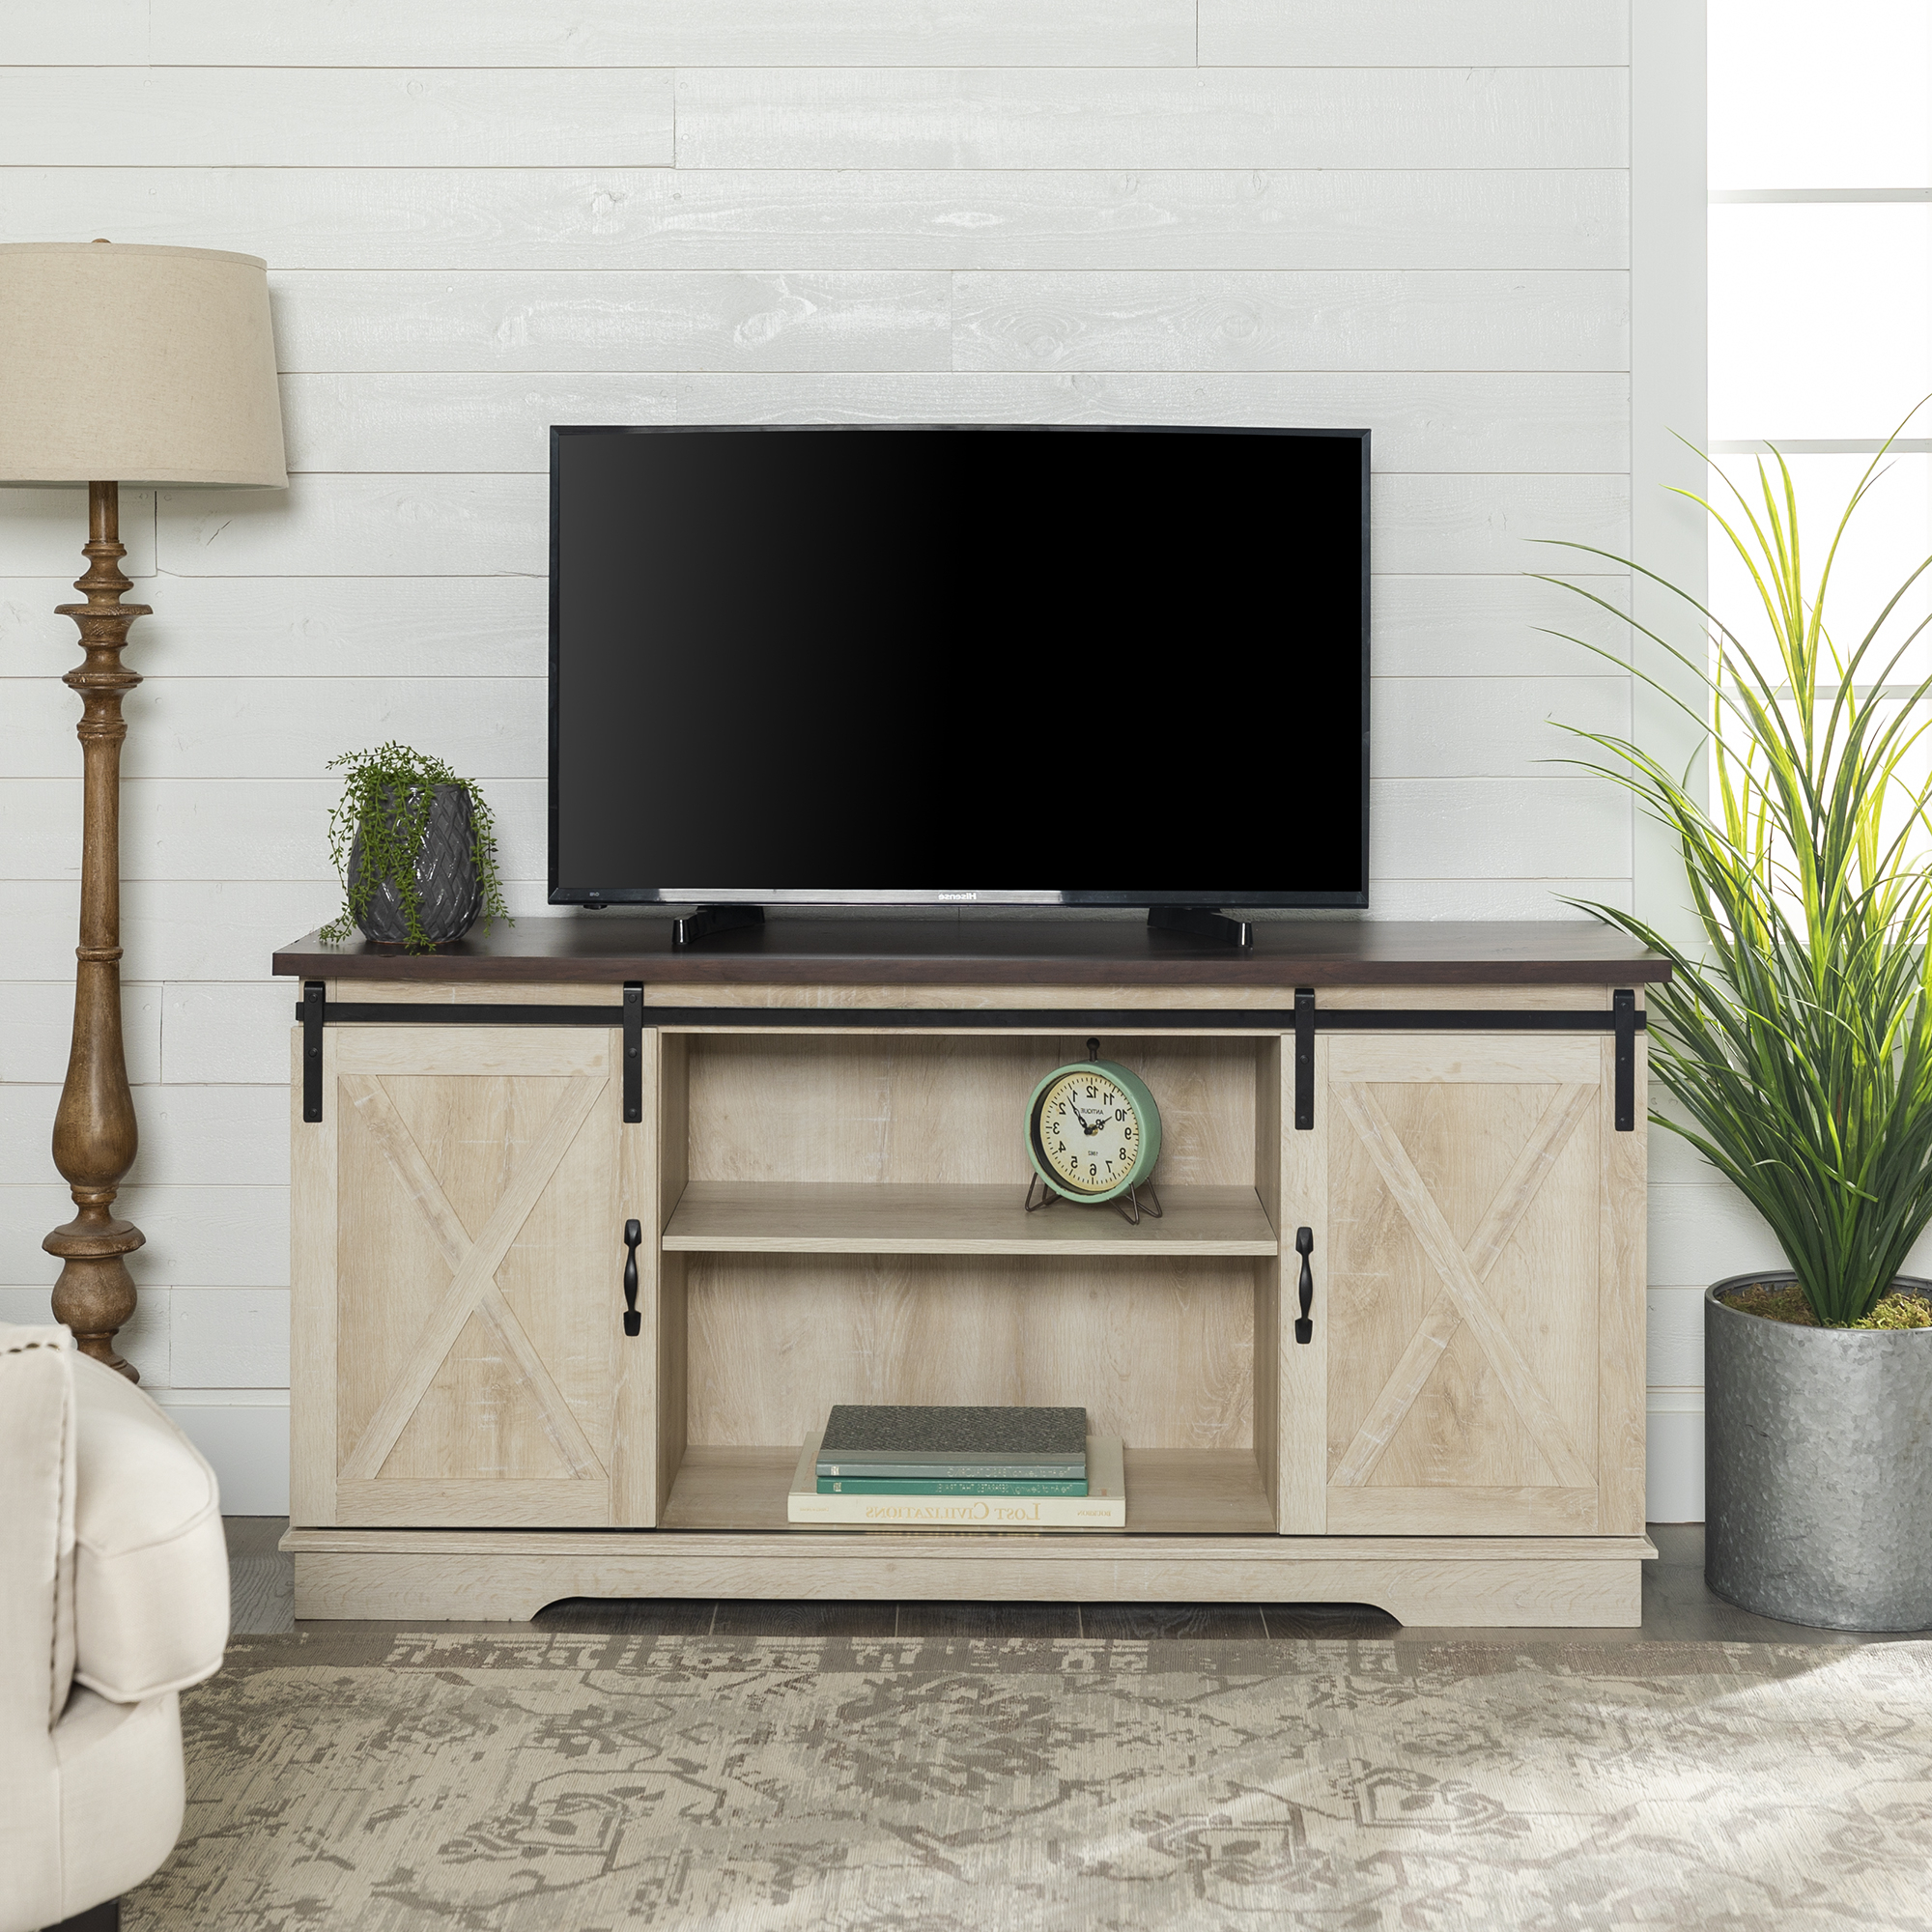 Woven Paths Farmhouse Sliding Barn Door Tv Stand For Tvs With Regard To Woven Paths Franklin Grooved Two Door Tv Stands (View 1 of 20)